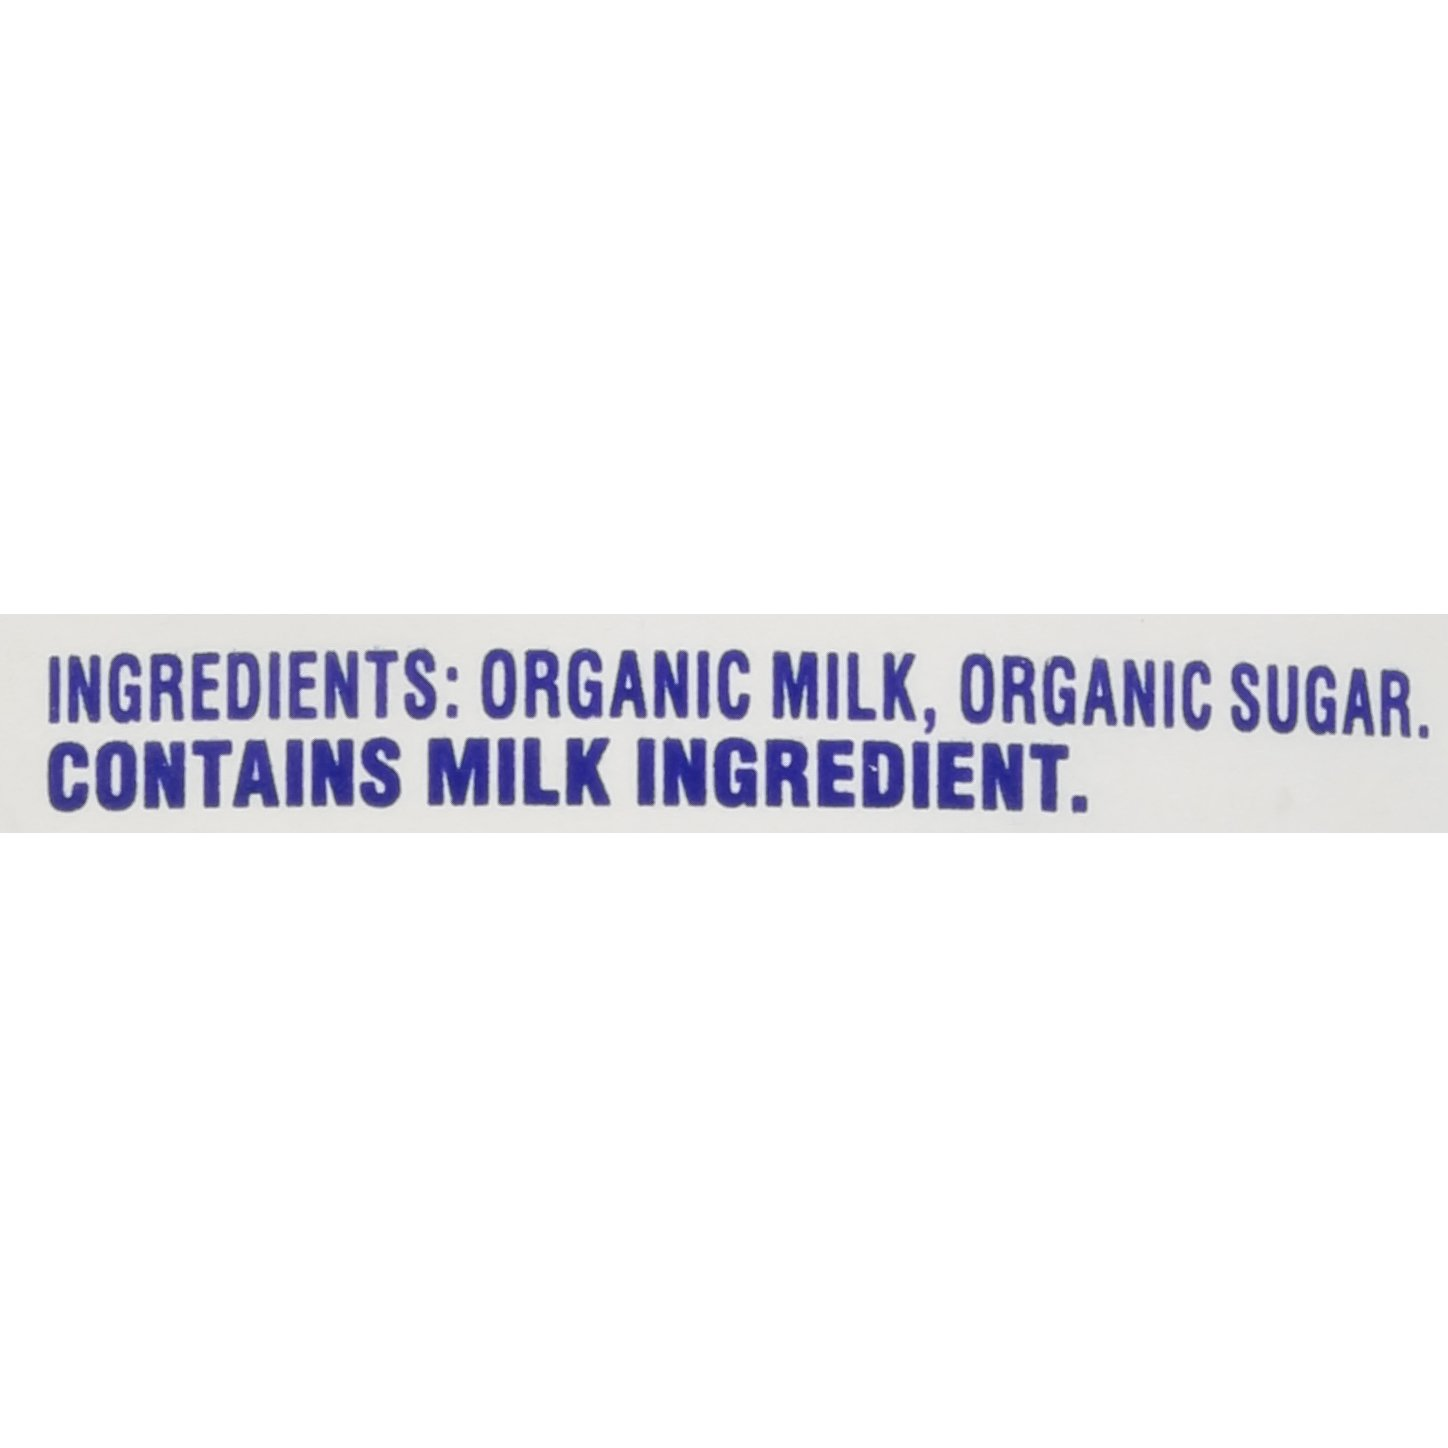 Amazon.com : Carnation Organic Sweetened Condensed Milk, 14 fl oz : Grocery & Gourmet Food